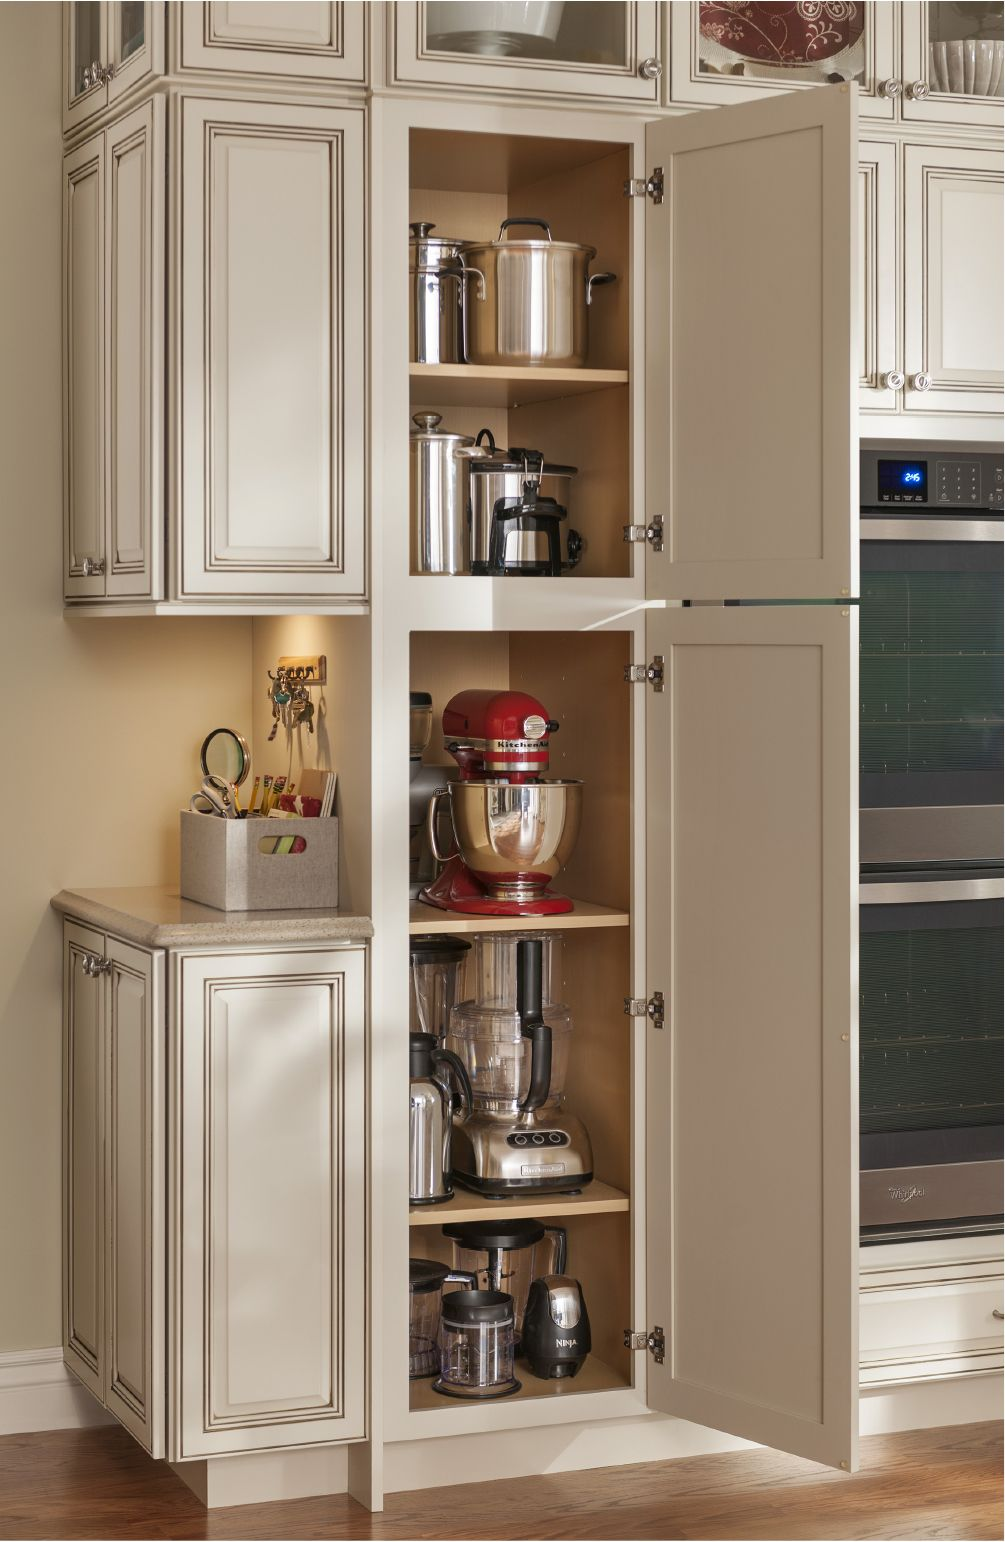 built in pantry design ideas pictures remodel and decor page 11 pantry pinterest pantry design pantry and kitchens